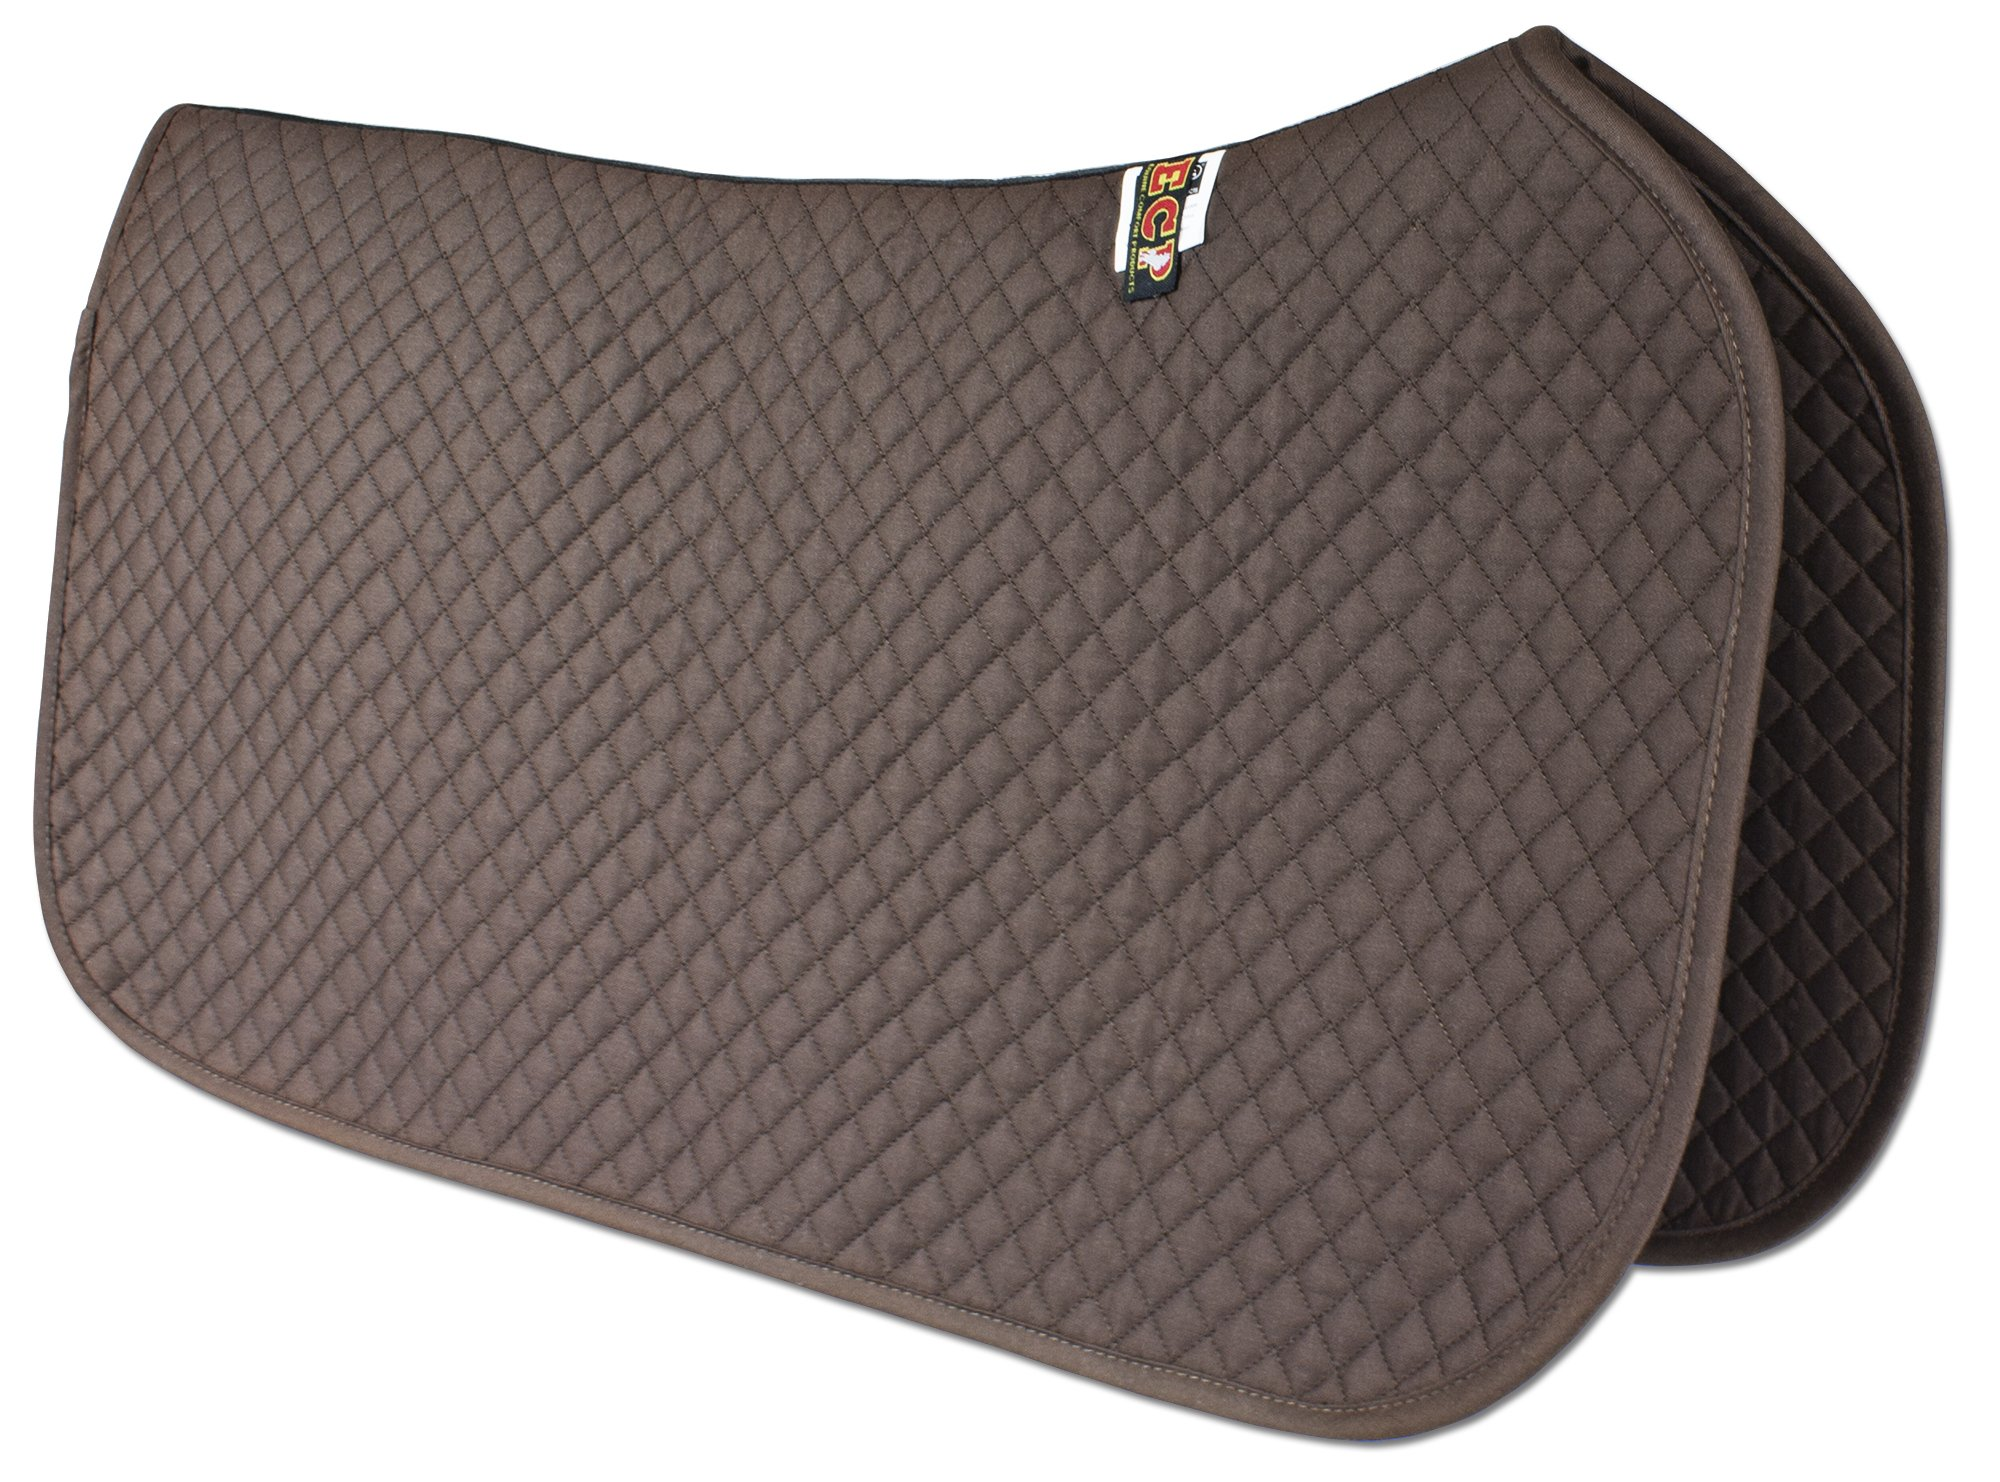 ECP Western All Purpose Diamond Quilted Cotton Saddle Pad Color Brown